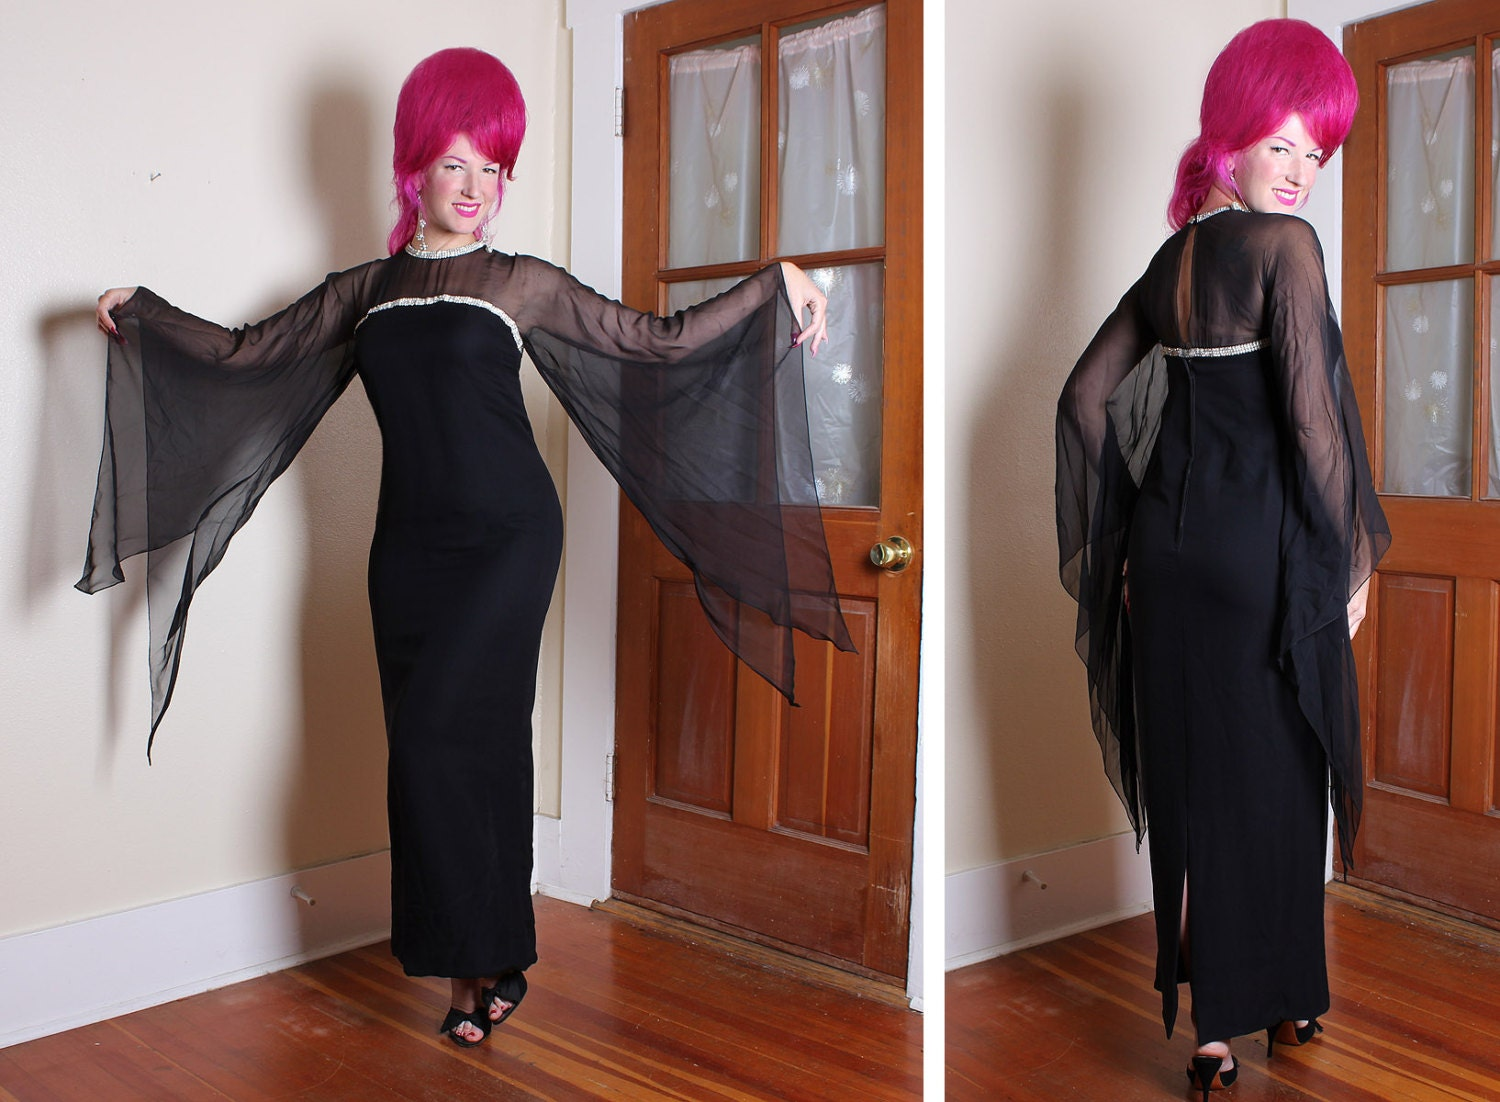 BEWITCHING Early 1960's Inky Black Silk Chiffon Over Rayon Evening Gown - Rhinestone Illusion Bust & Huge Bat Wing Draped Sleeves - Size M L